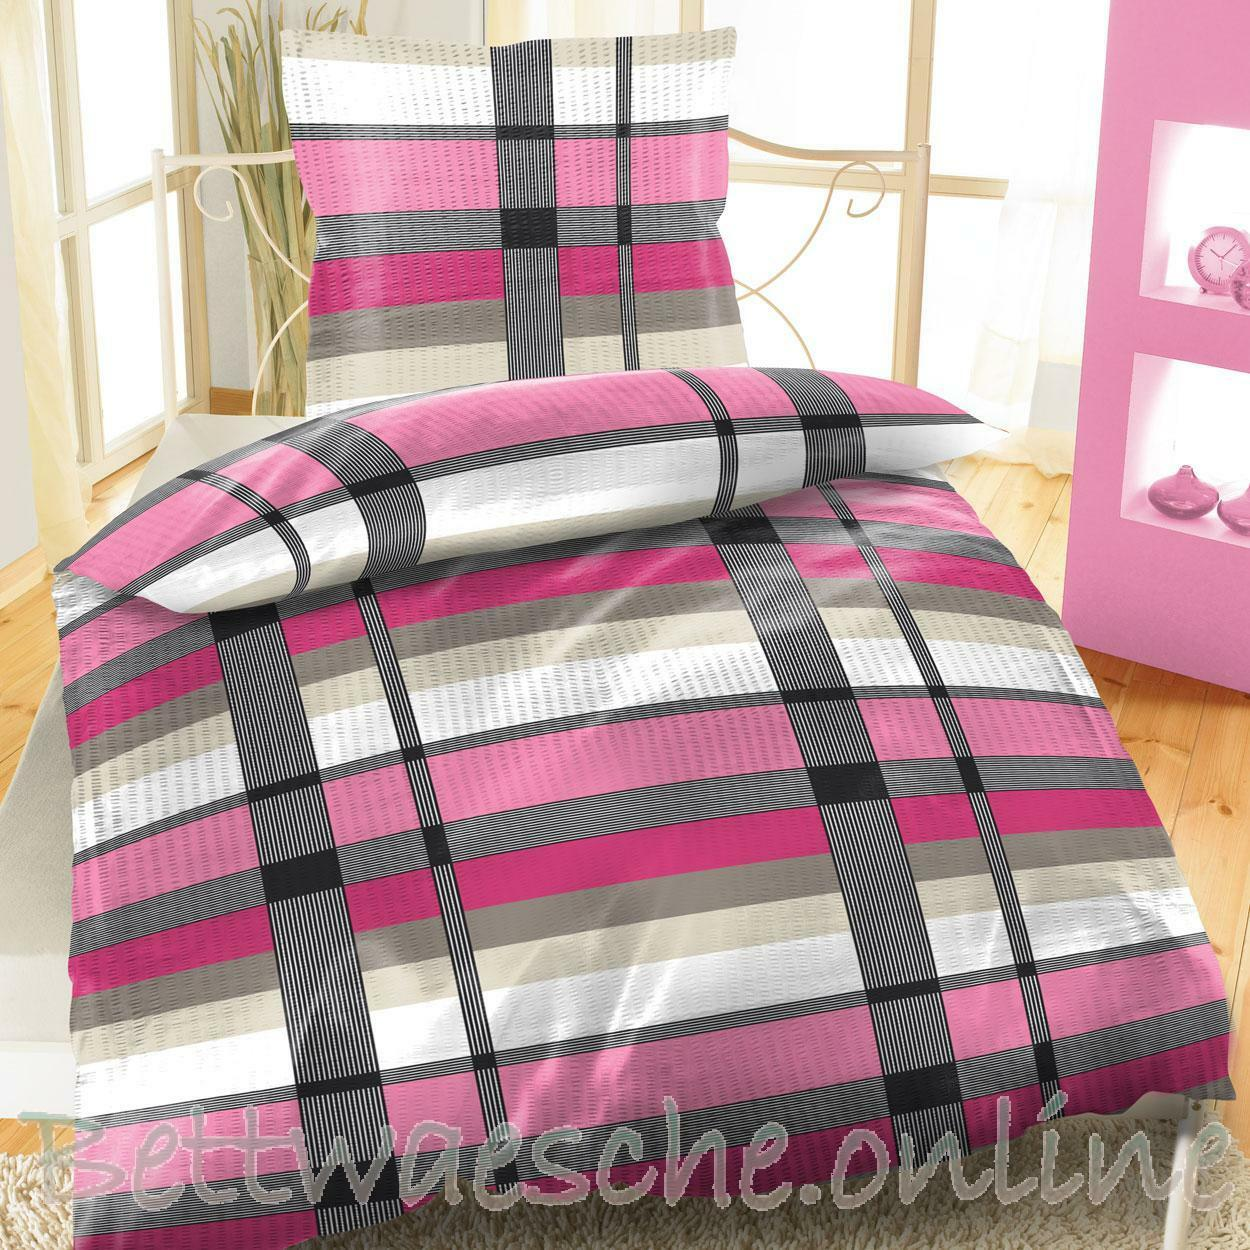 seersucker baumwolle bettw sche 135x200 cm 2 teilig kariert pink eur 9 95 picclick de. Black Bedroom Furniture Sets. Home Design Ideas